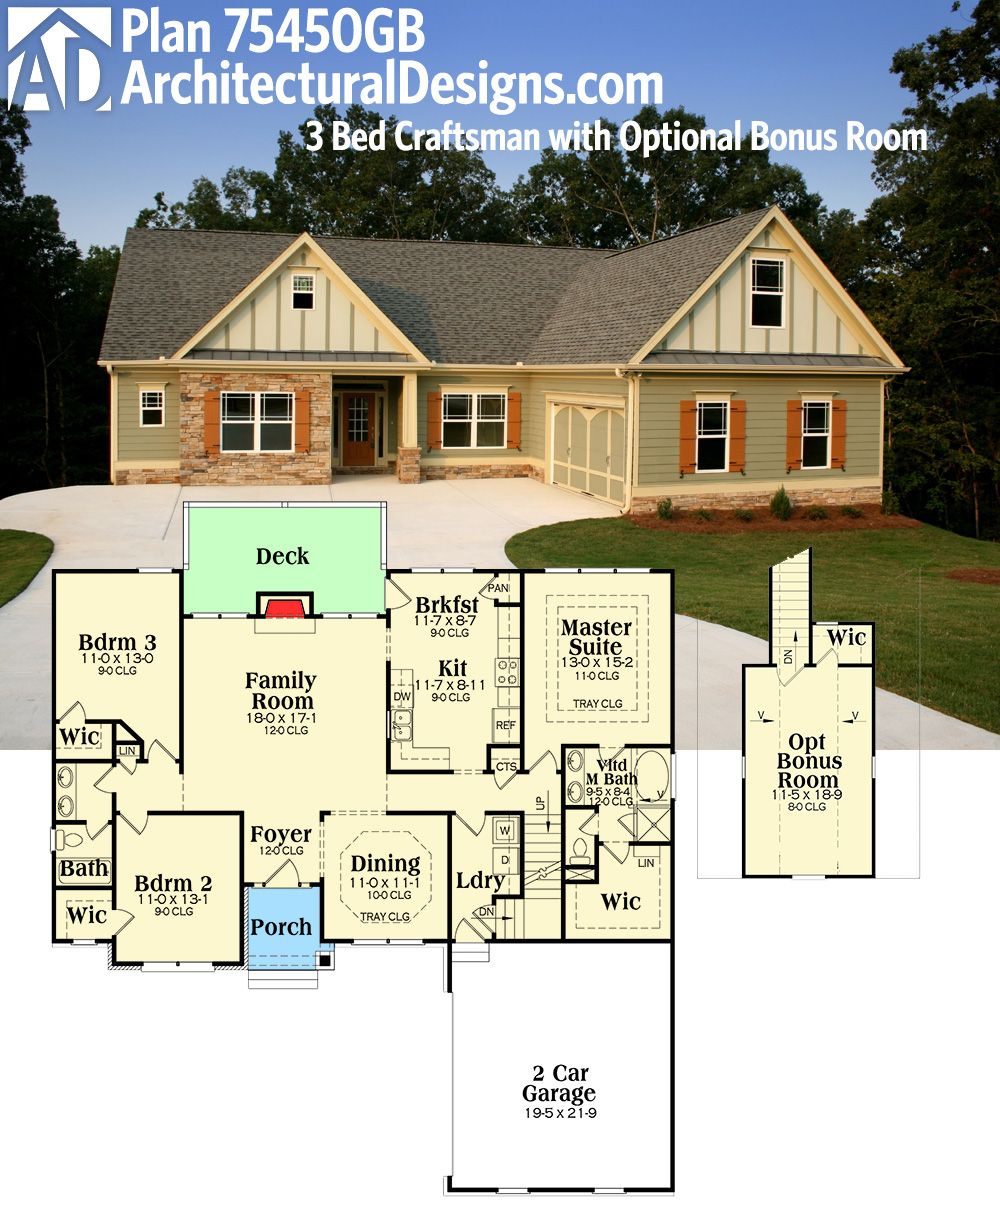 Plan 75450gb 3 bed craftsman with optional bonus room House plans without garage